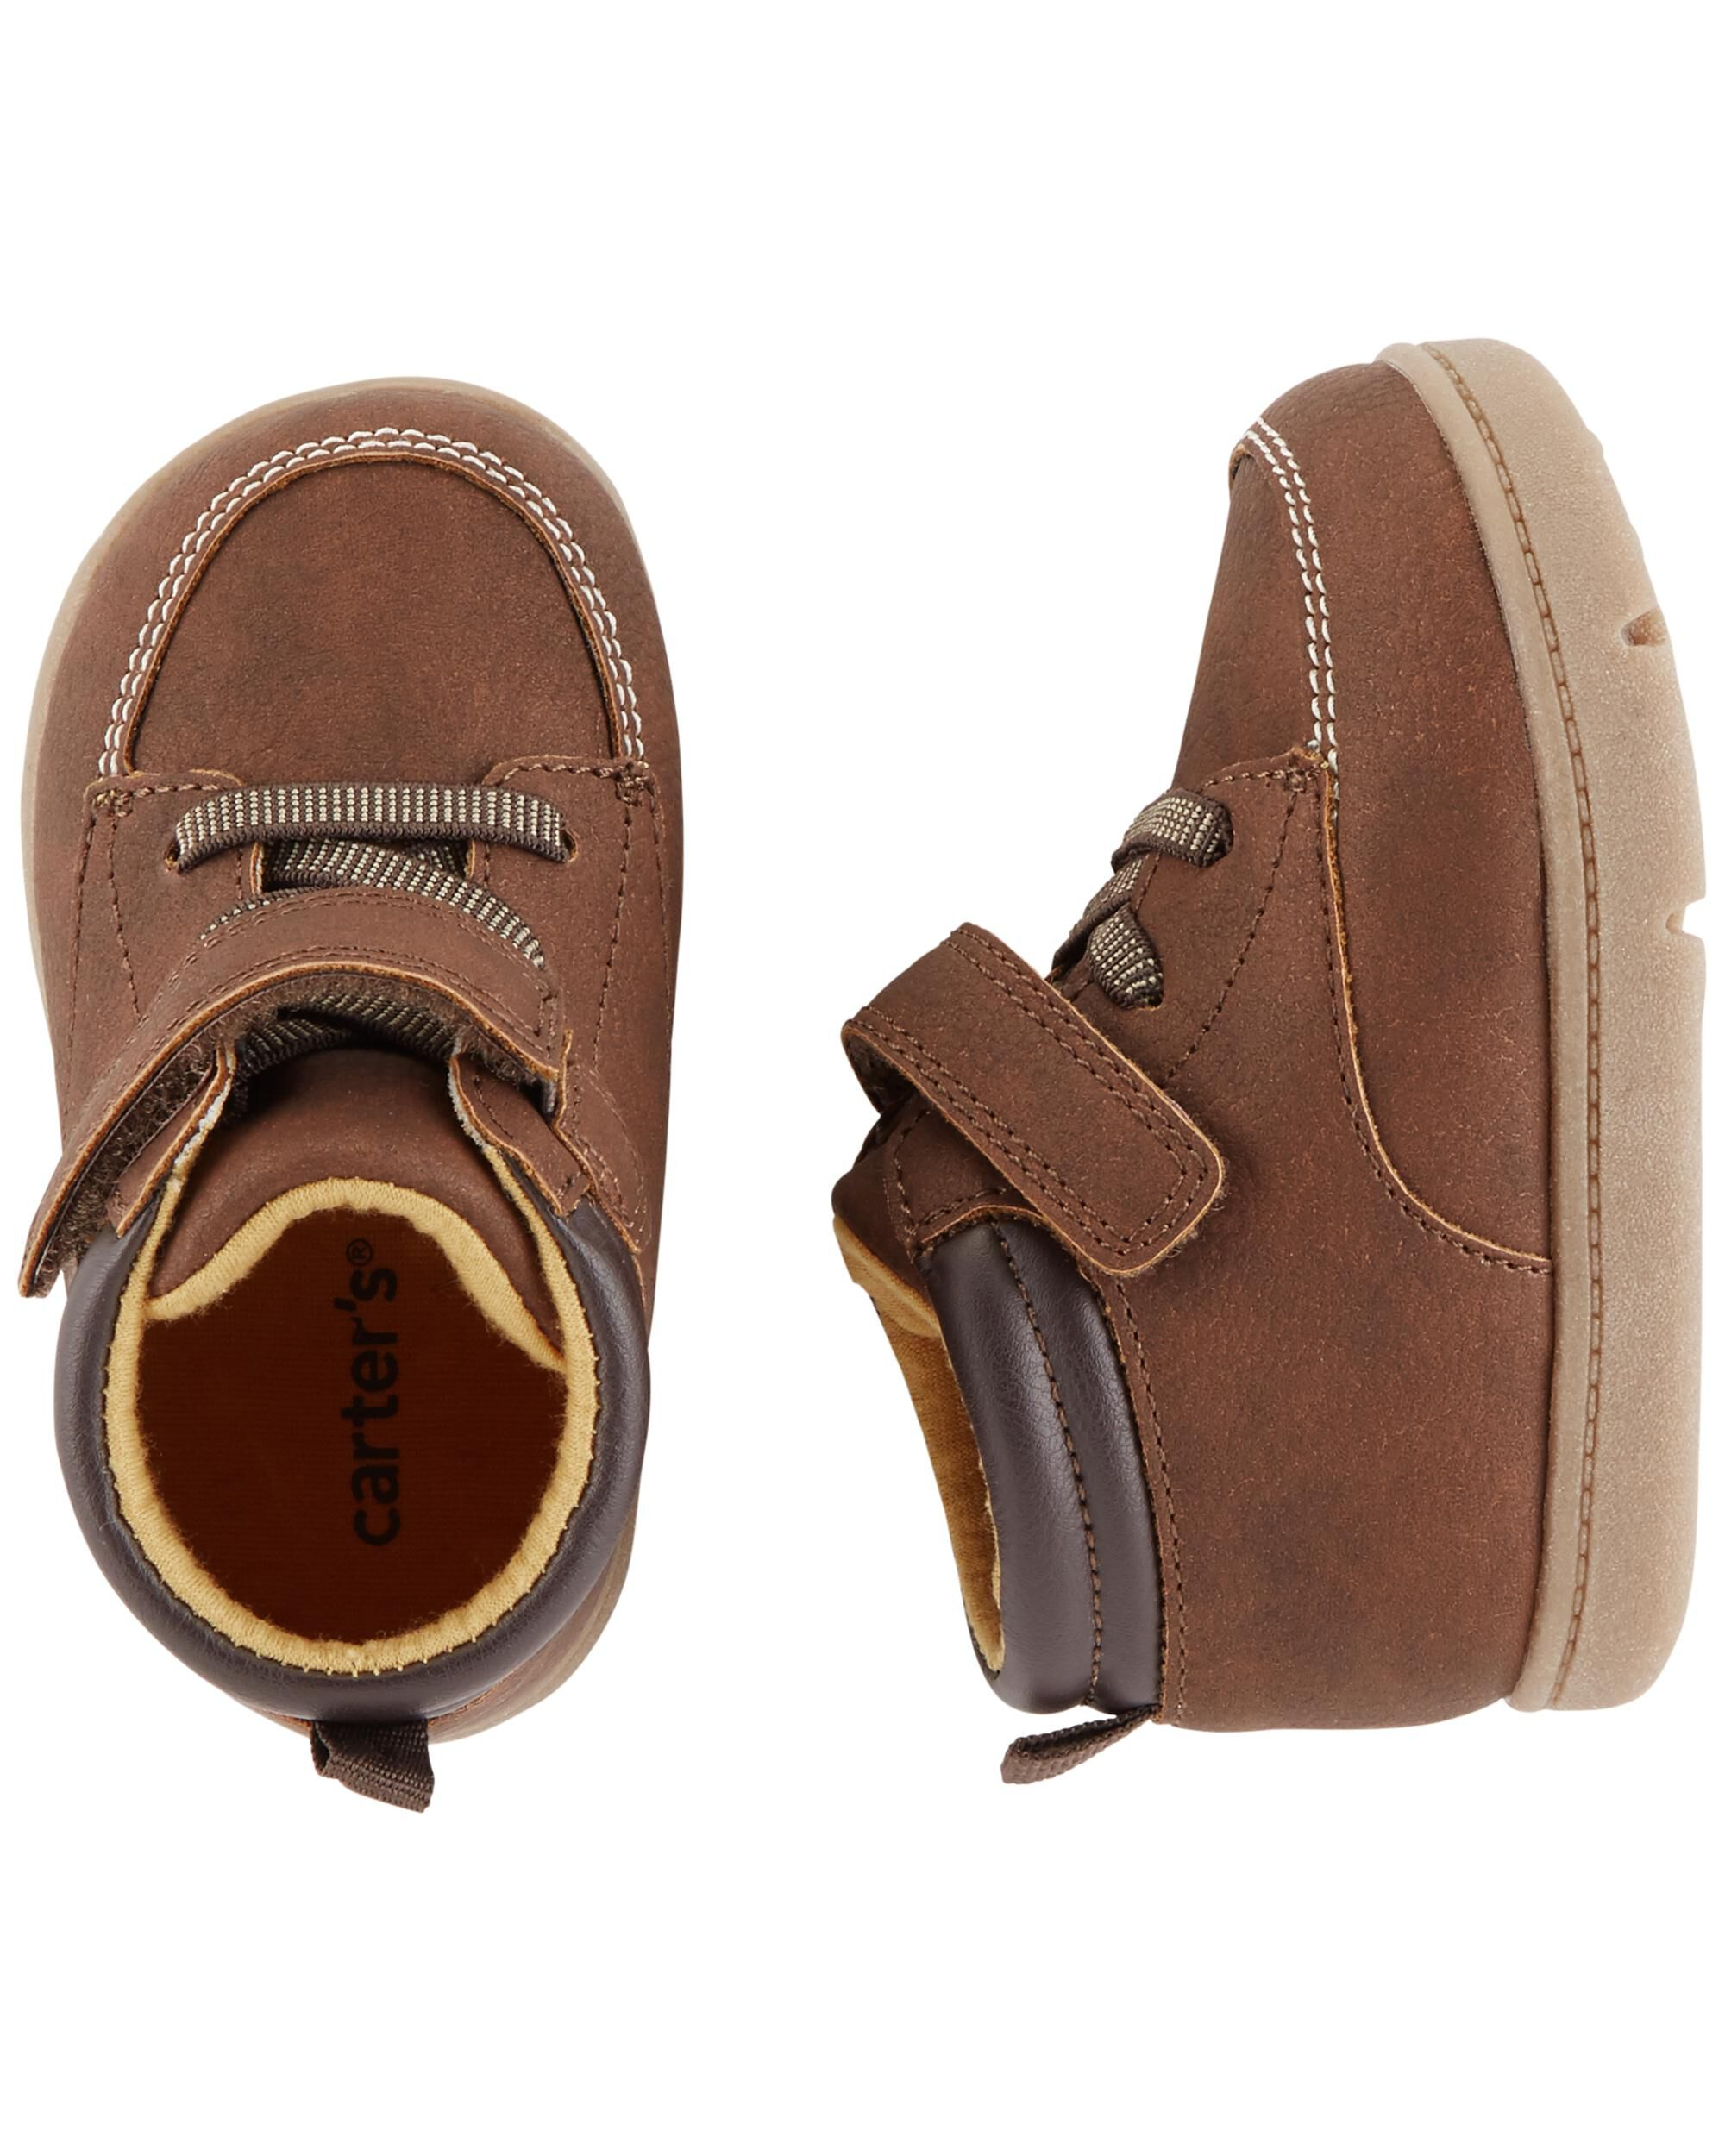 Nikson Every Step Boots | carters